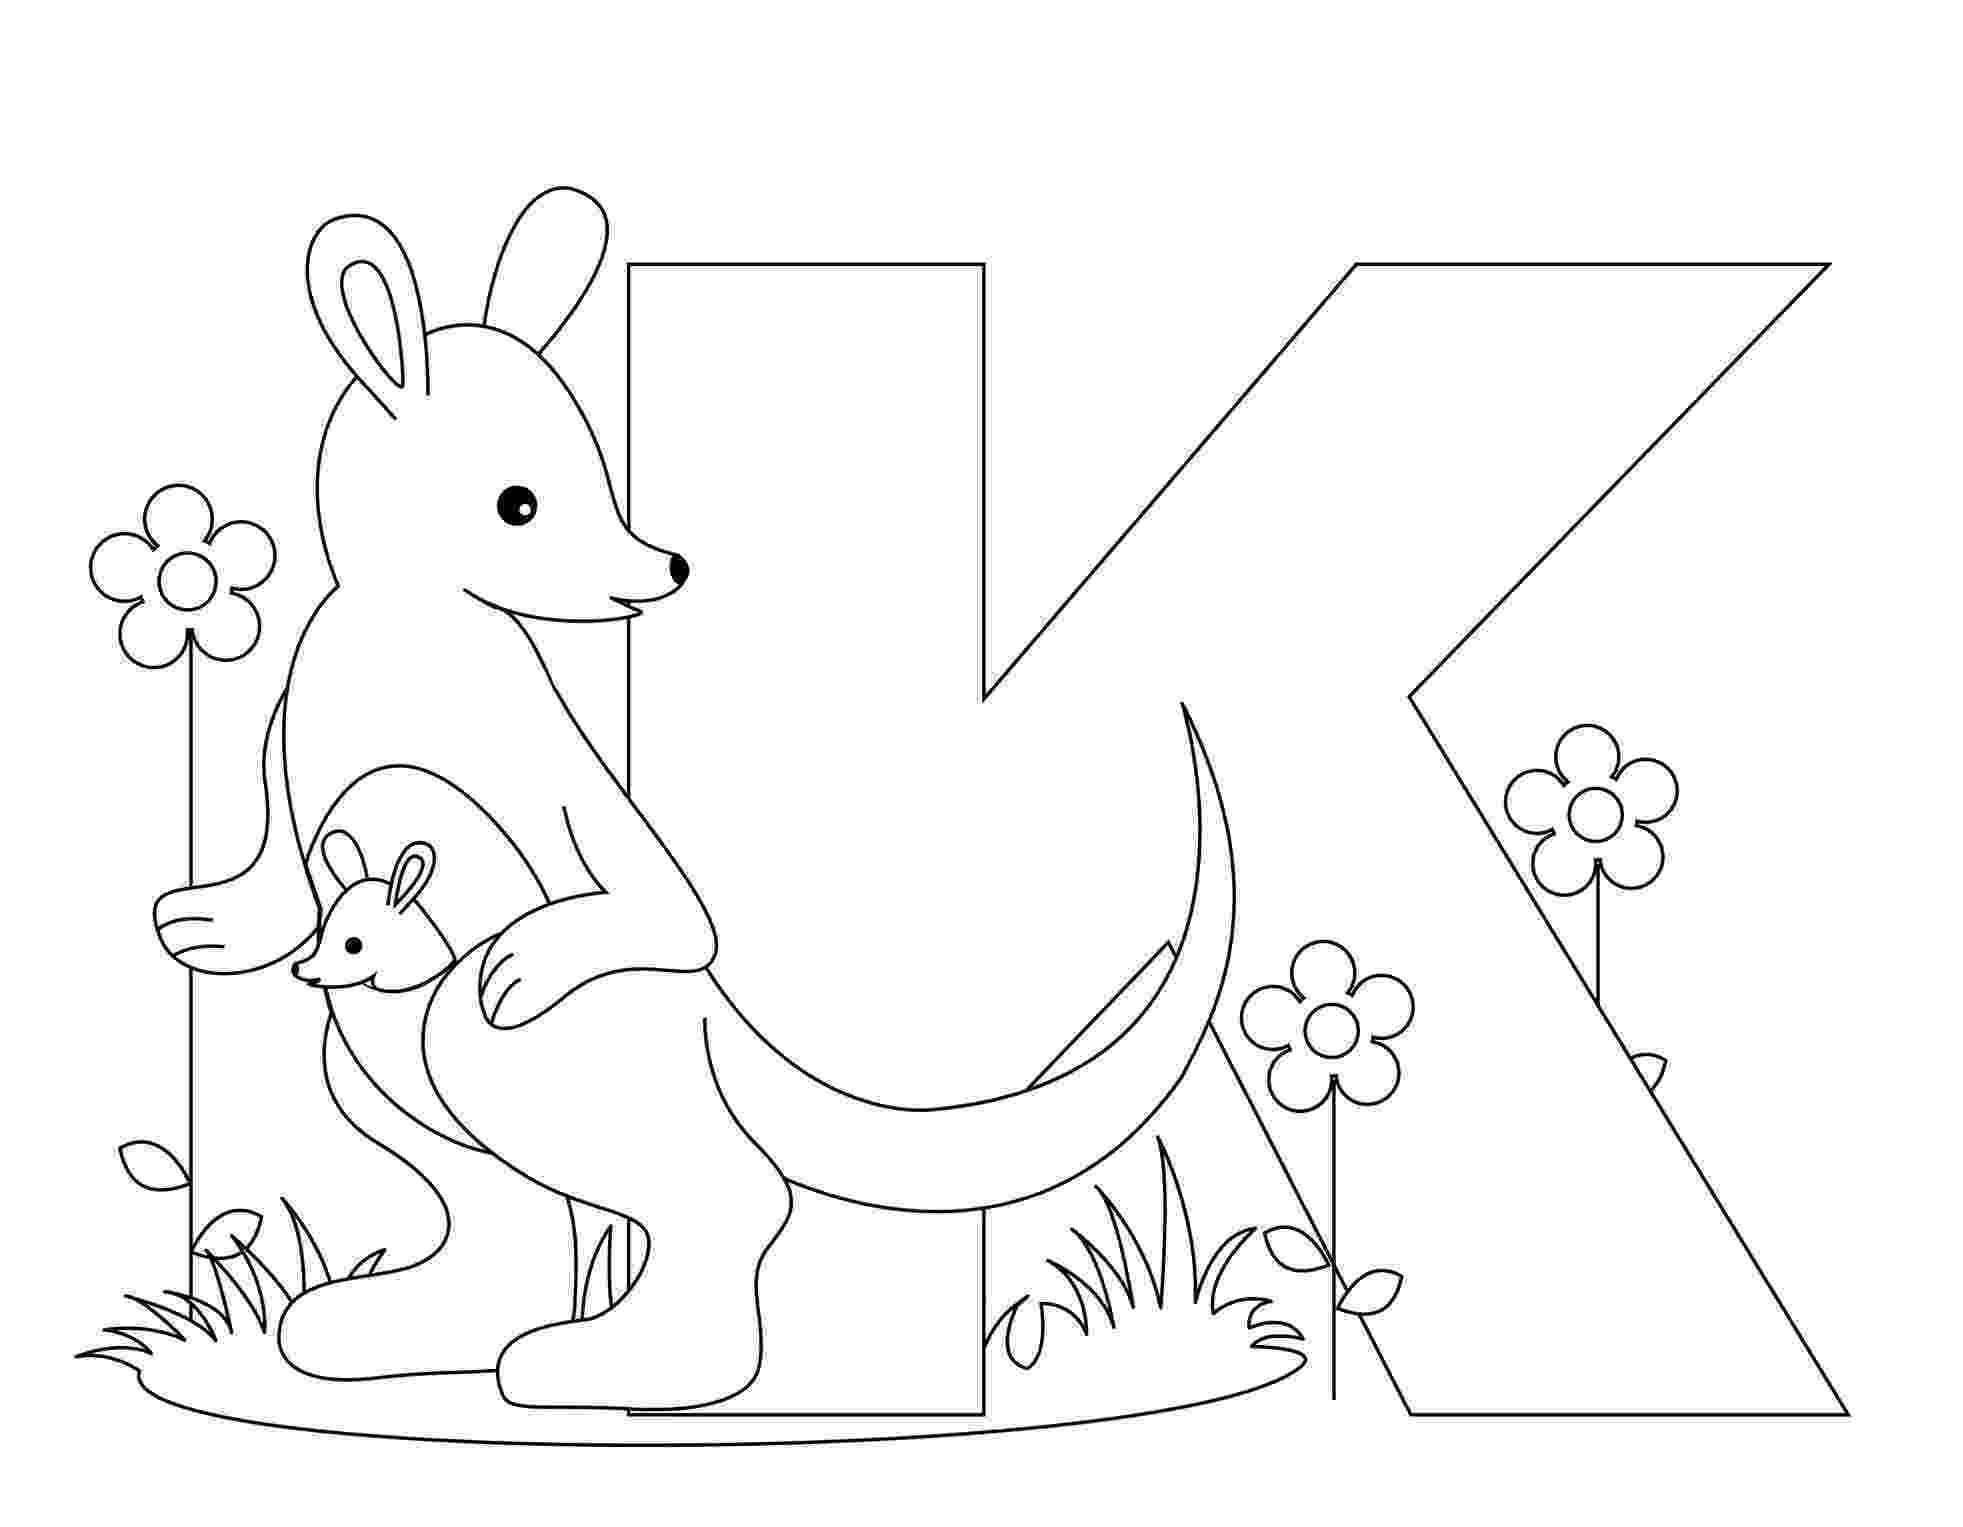 free alphabet coloring pages free printable alphabet coloring pages for kids best pages free coloring alphabet 1 2